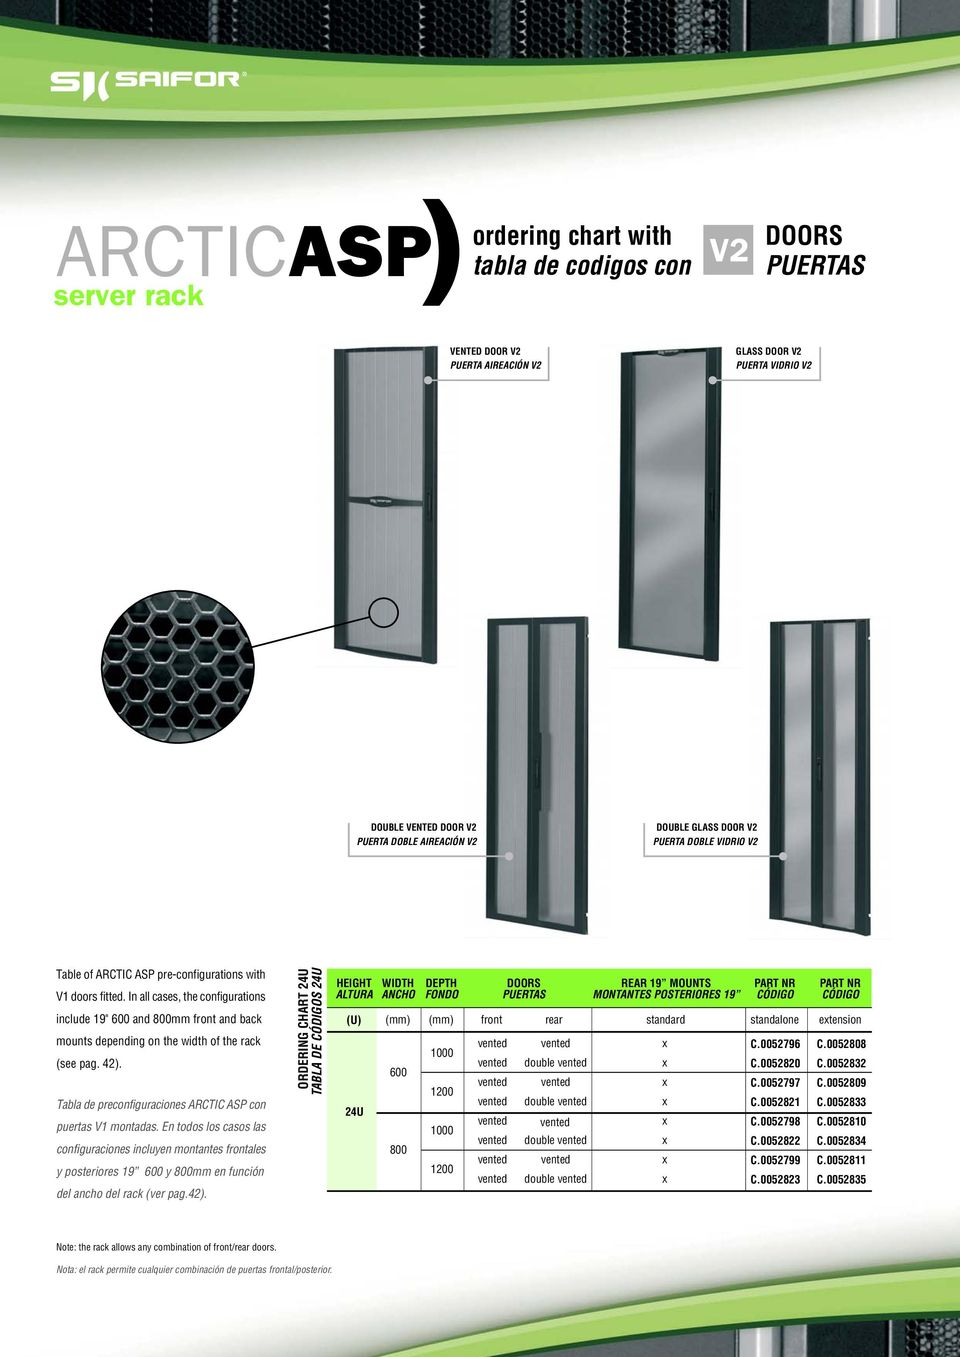 "In all cases, the configurations include 19"" and mm front and back mounts depending on the width of the rack (see pag. 42). Tabla de preconfiguraciones ARCTIC ASP con puertas V1 montadas."